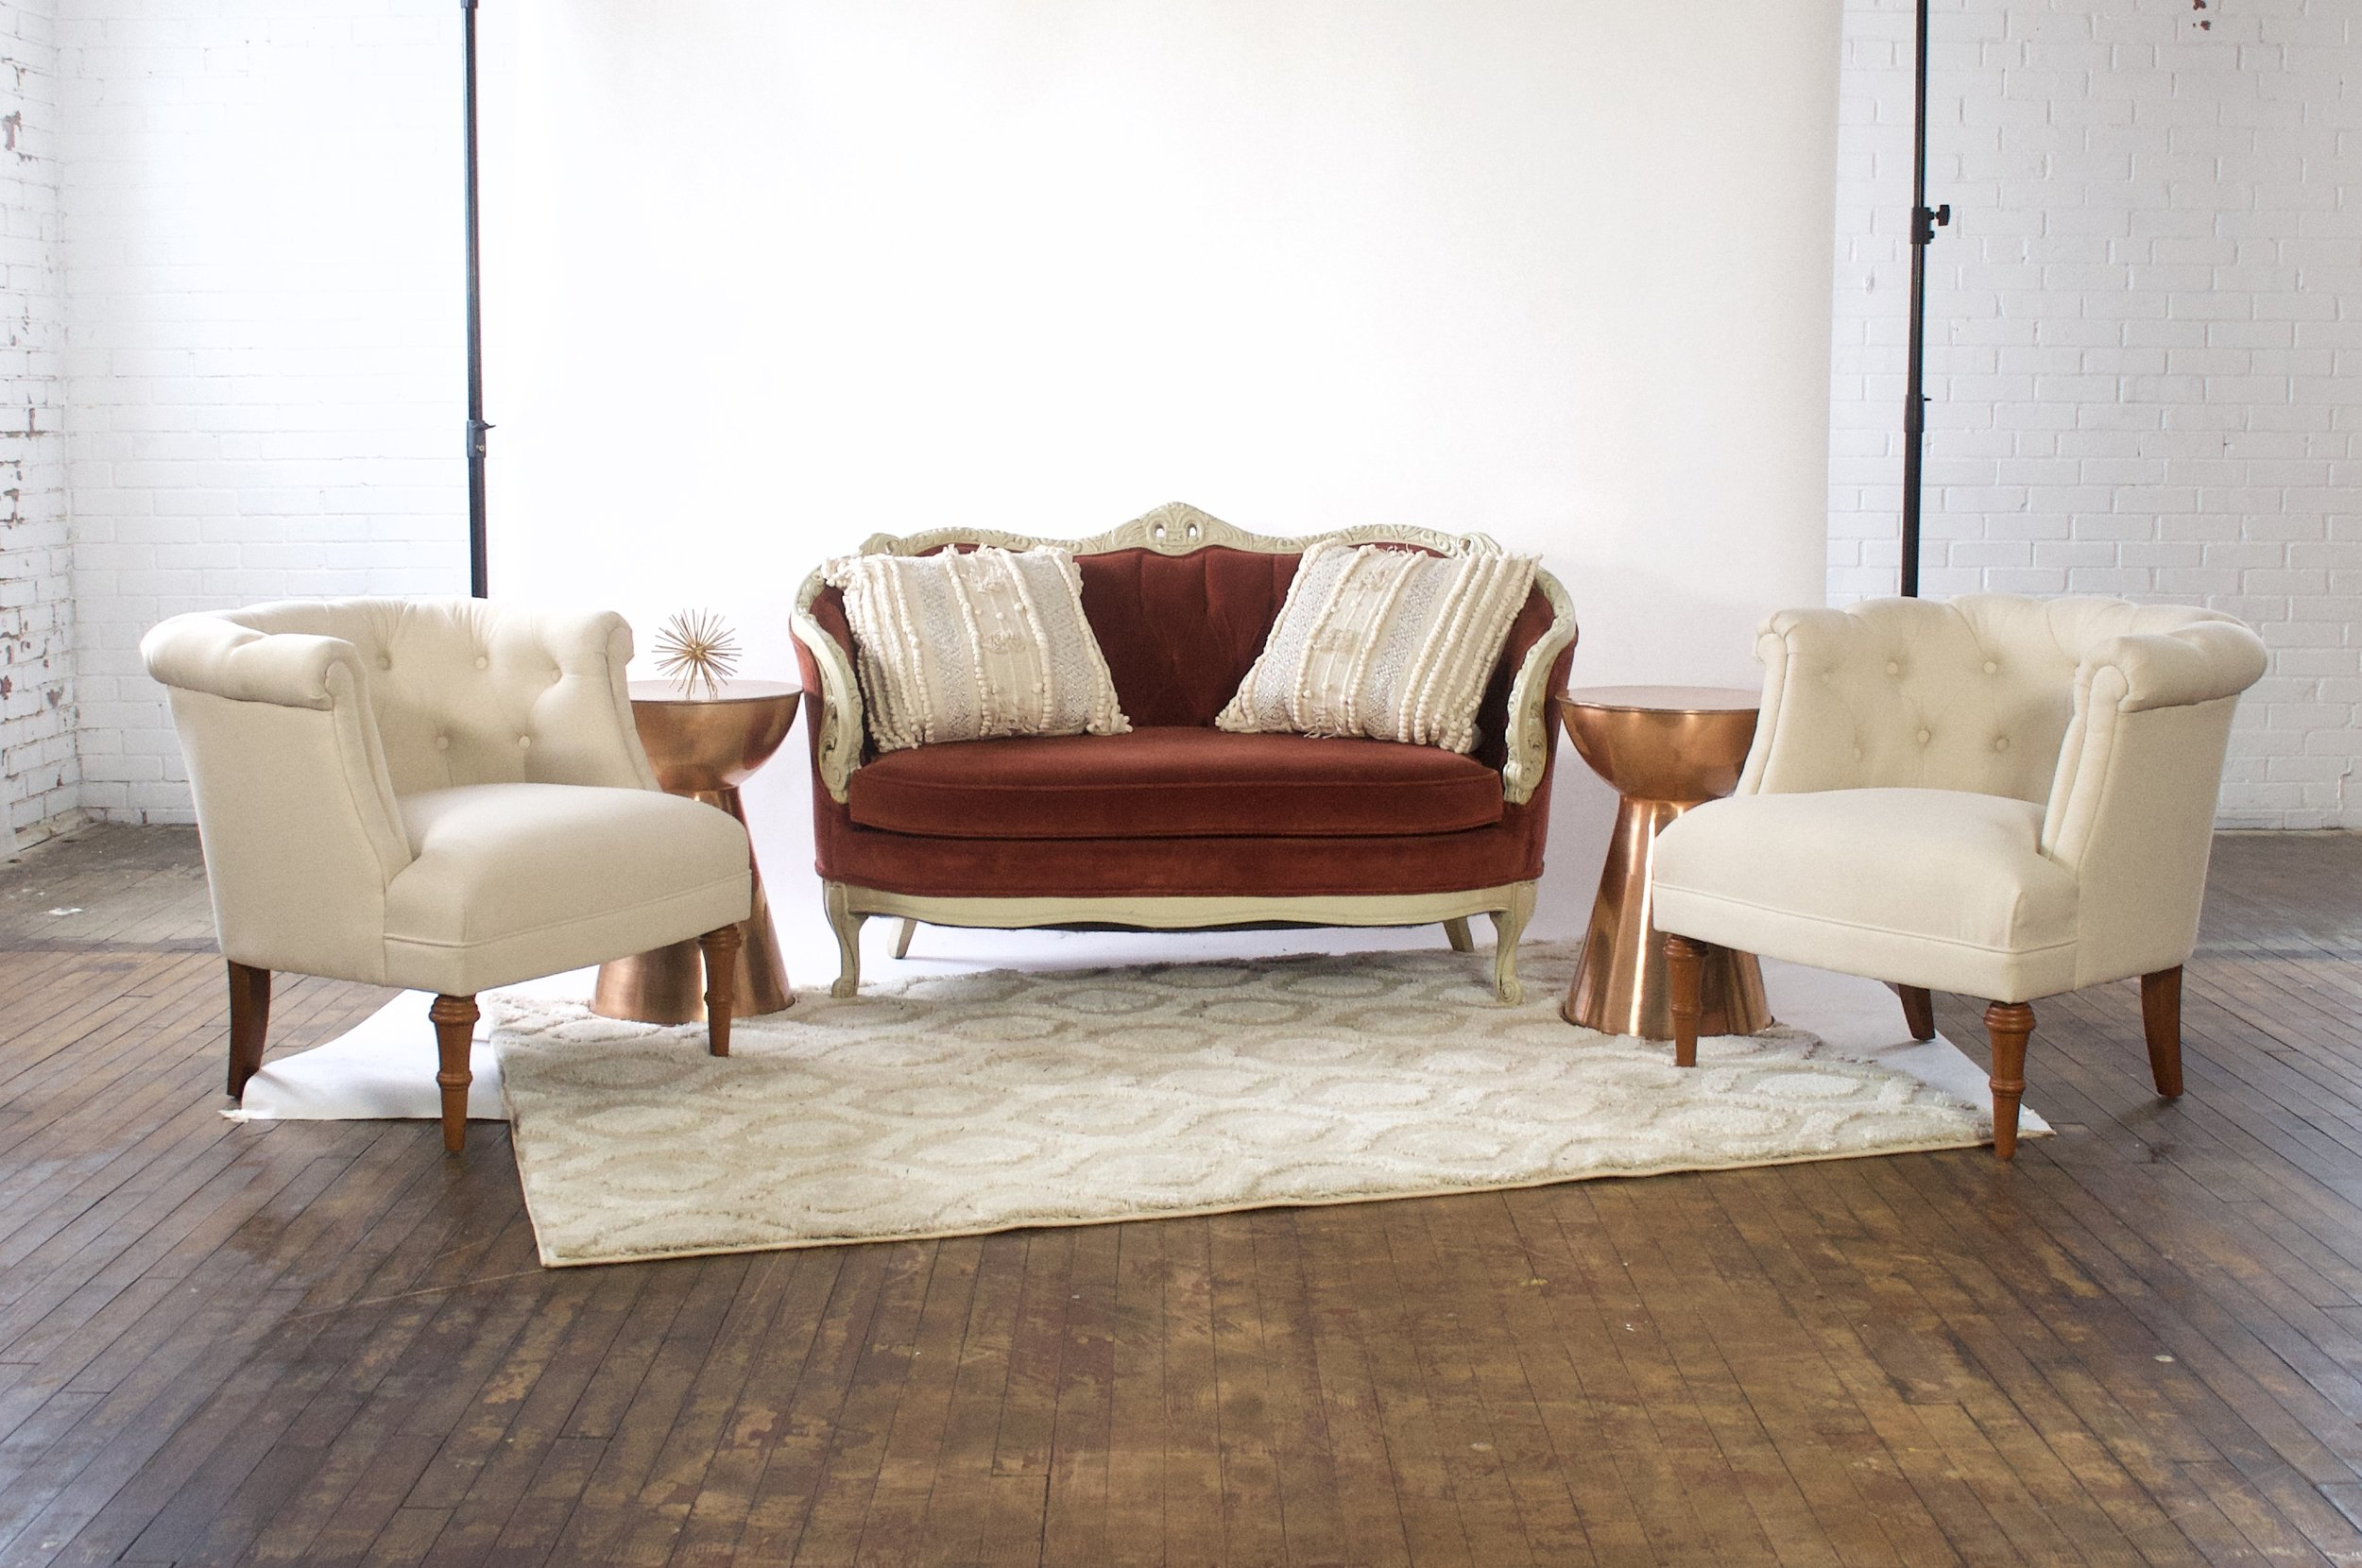 Cinnamon and Bonnie Demi - featuring mococcan cream rug and copper side tables